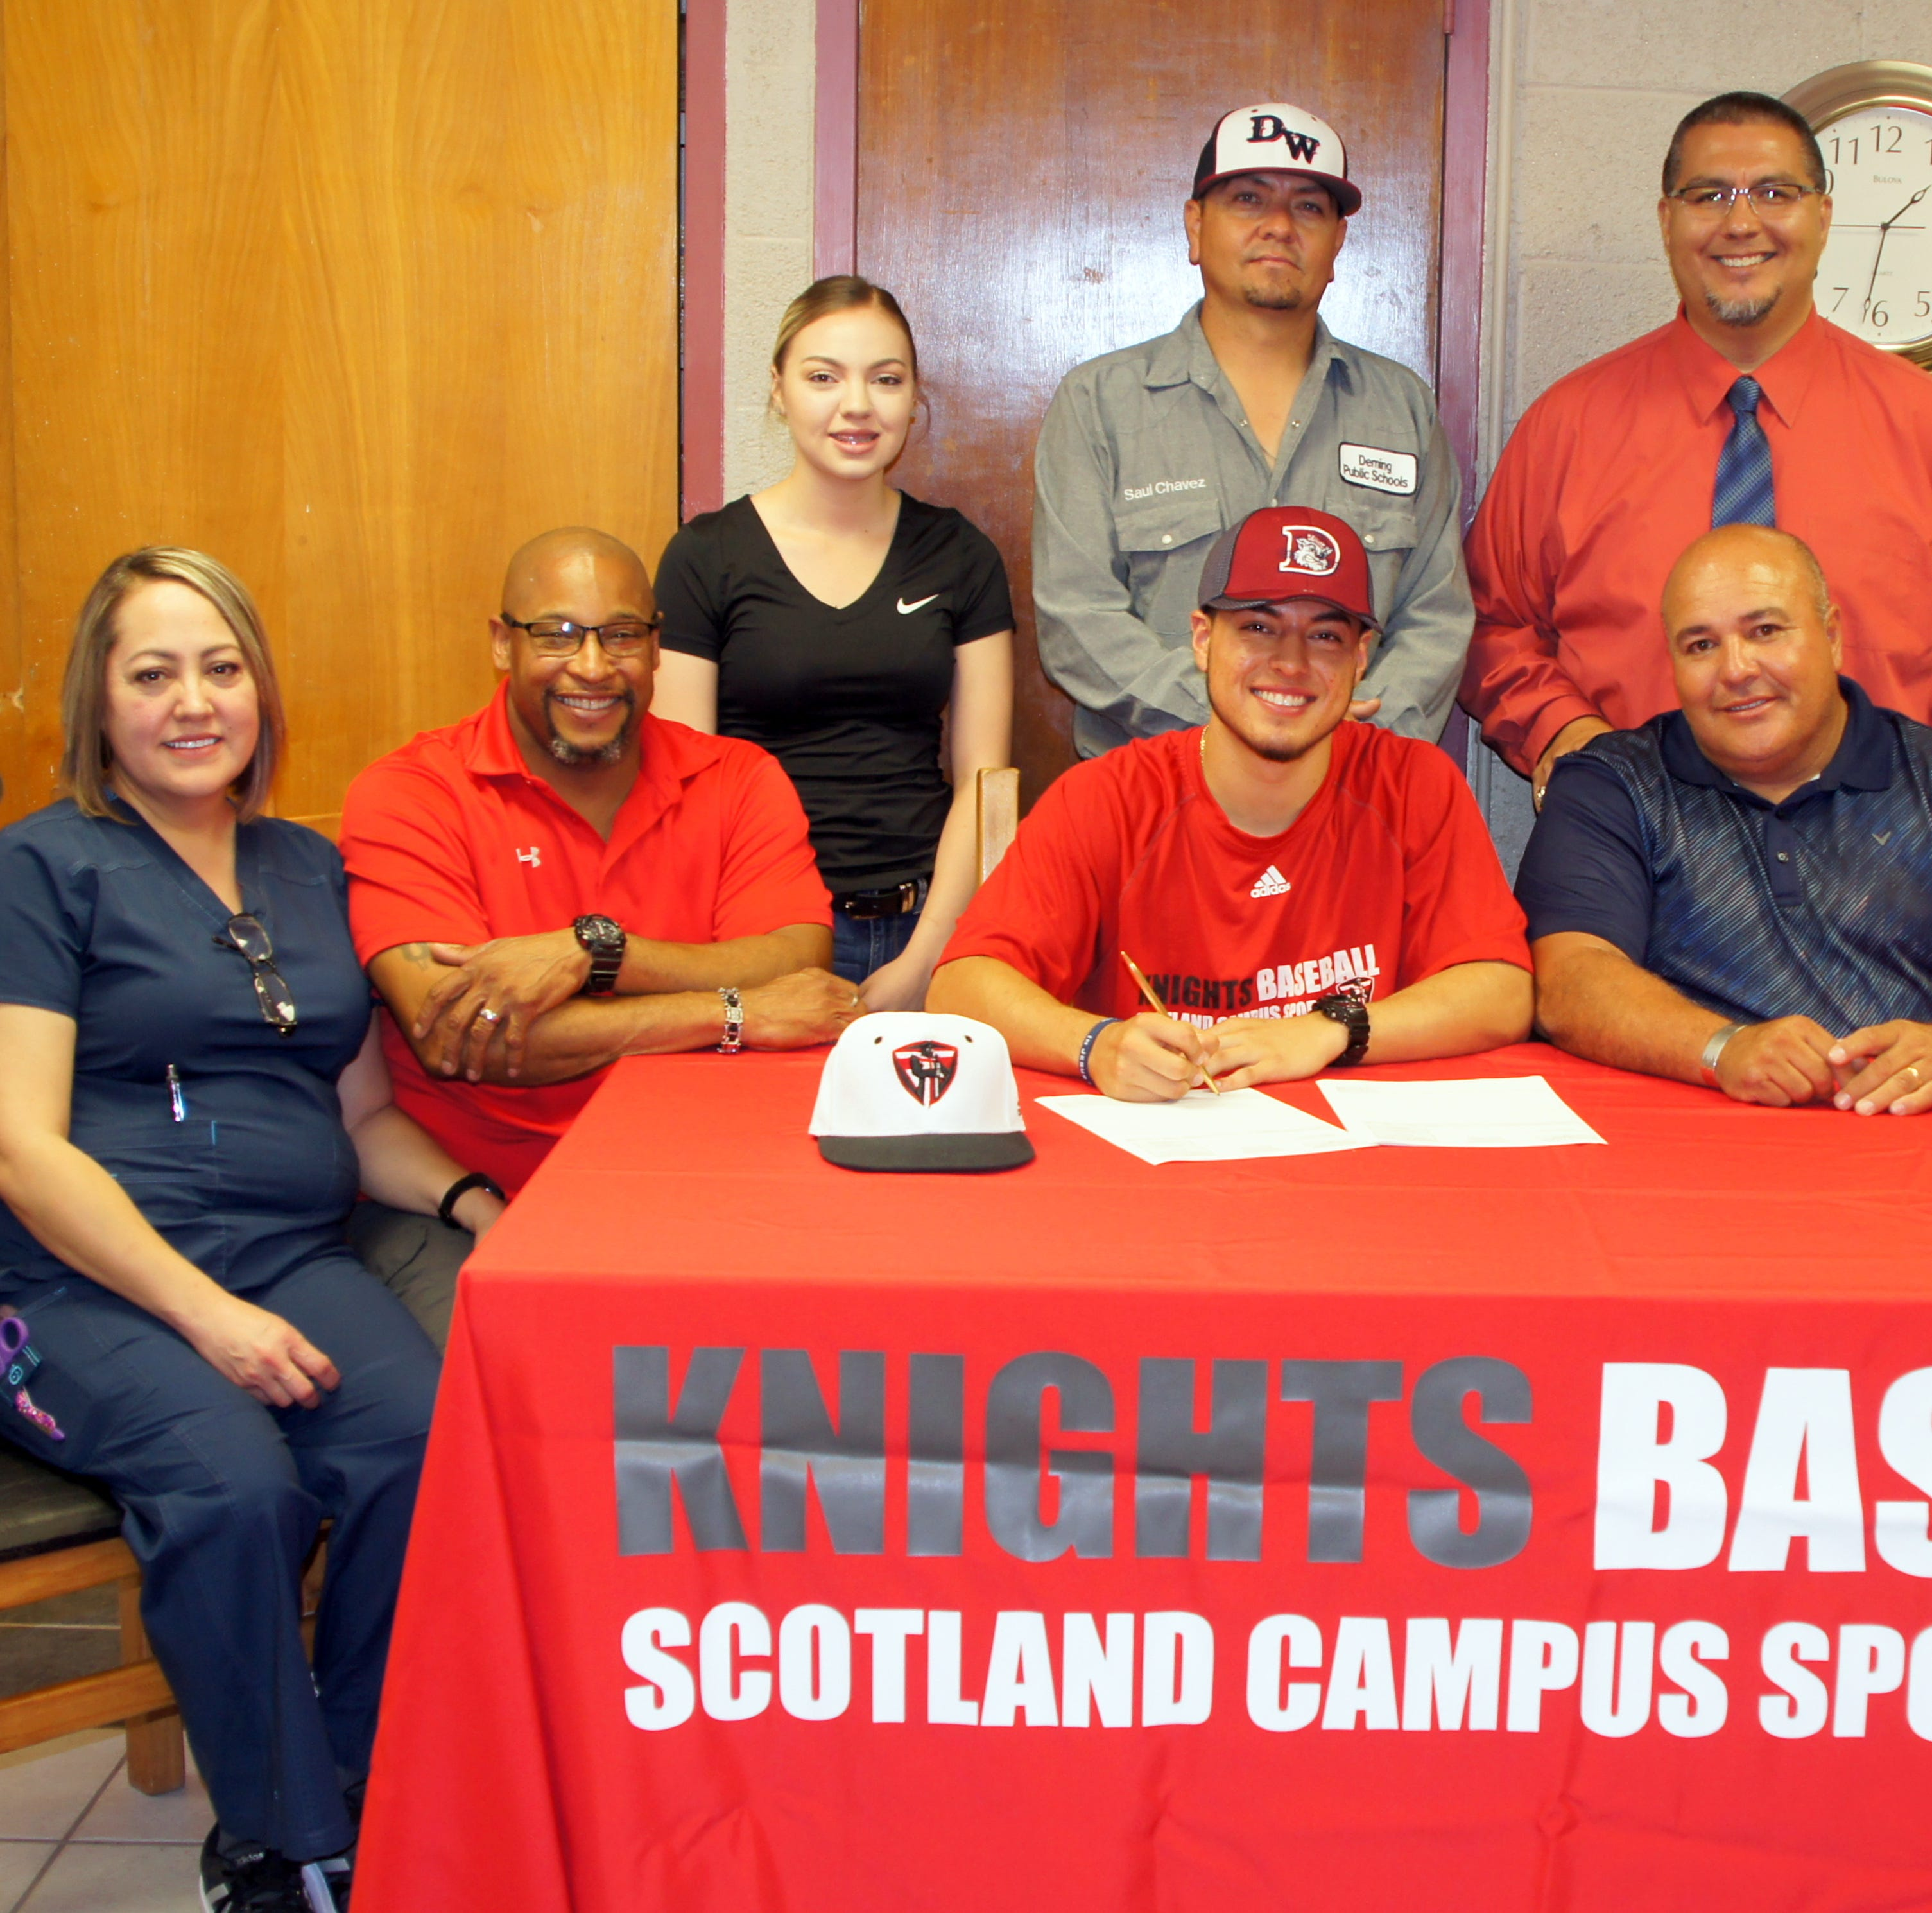 Former Wildcat Mireles signs with Christian-based baseball school